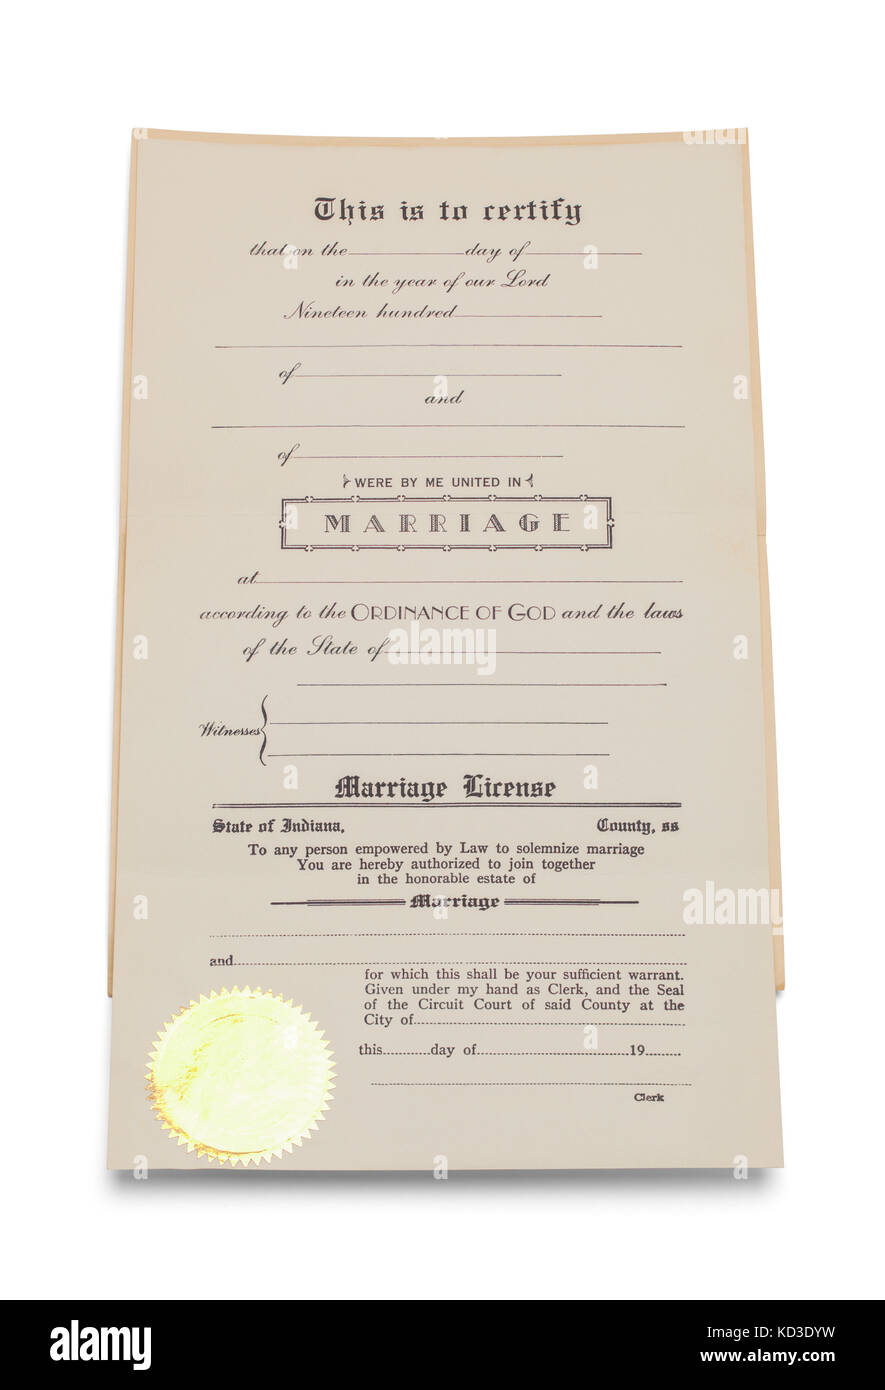 Marriage license stock photos marriage license stock images alamy marriage certificate with copy space isolated on a white background stock image xflitez Images